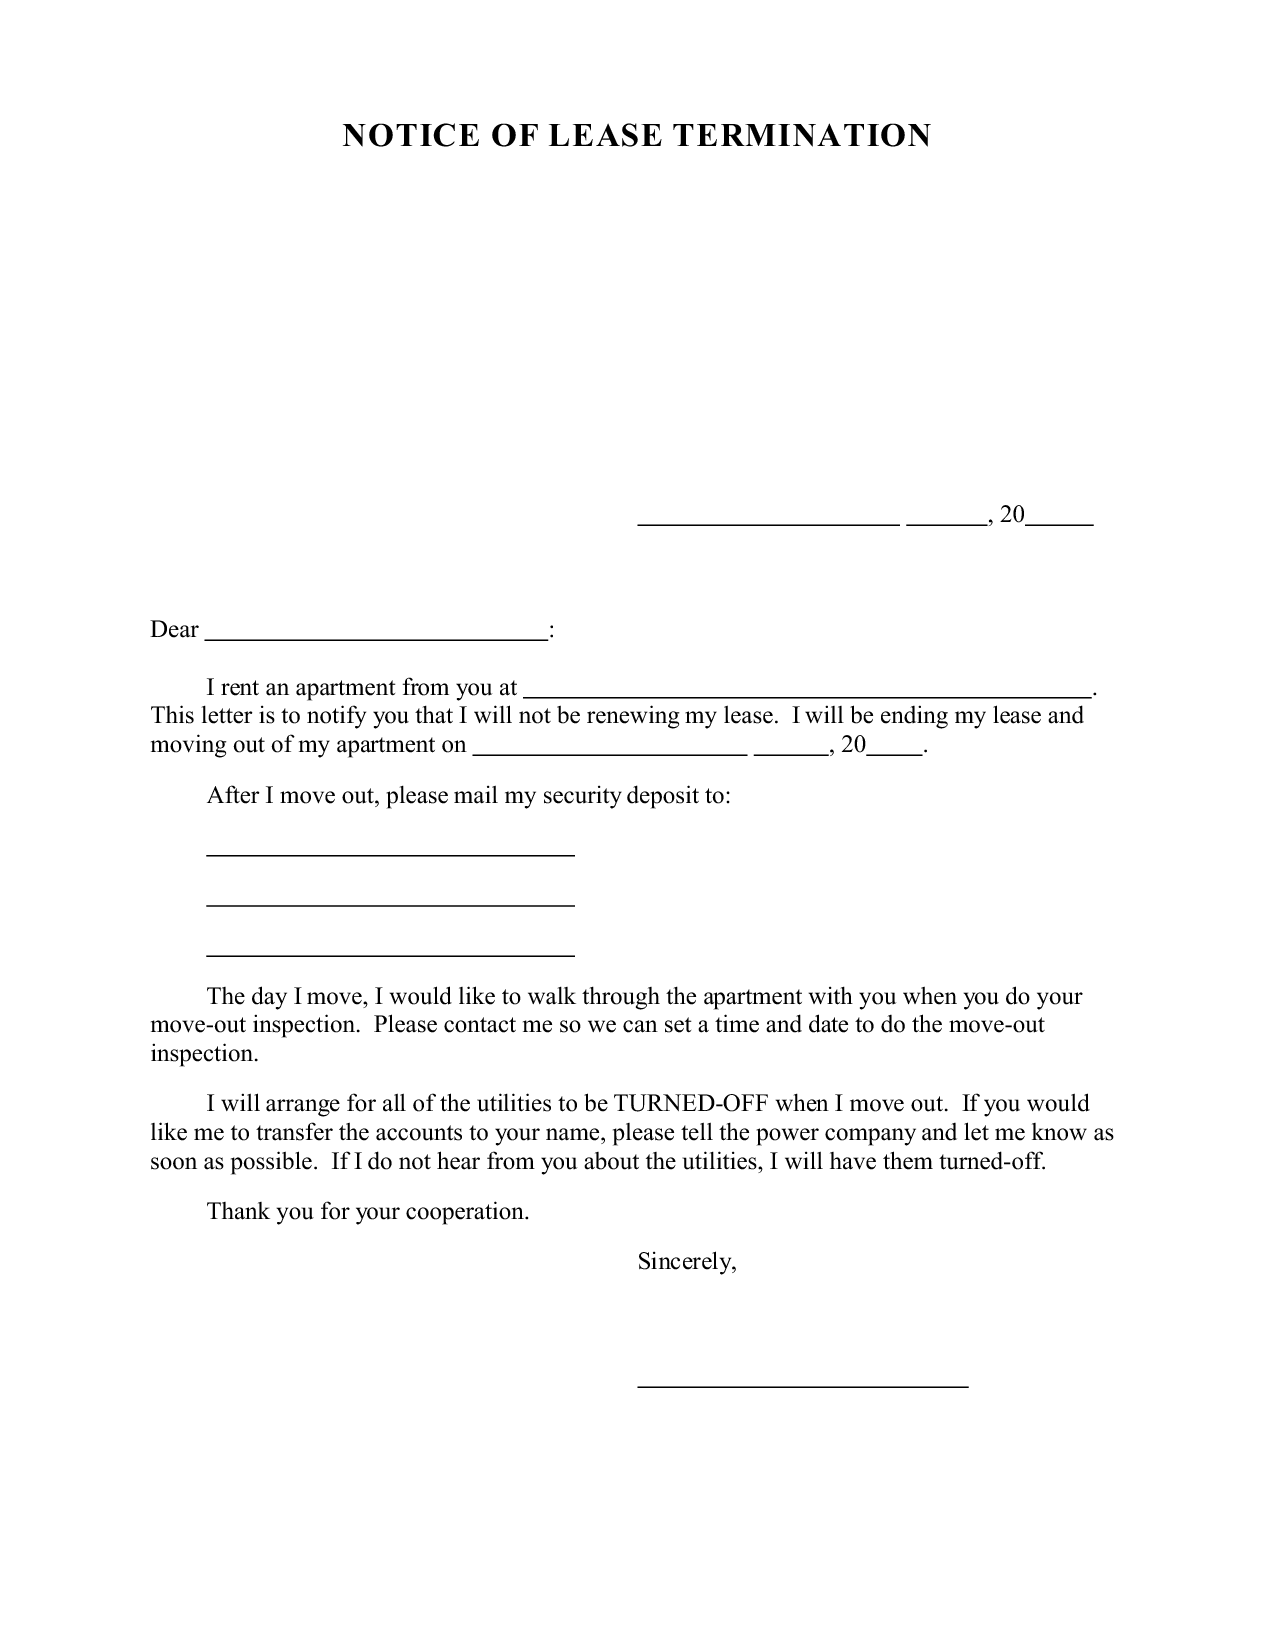 sample letter to tenant not renewing lease